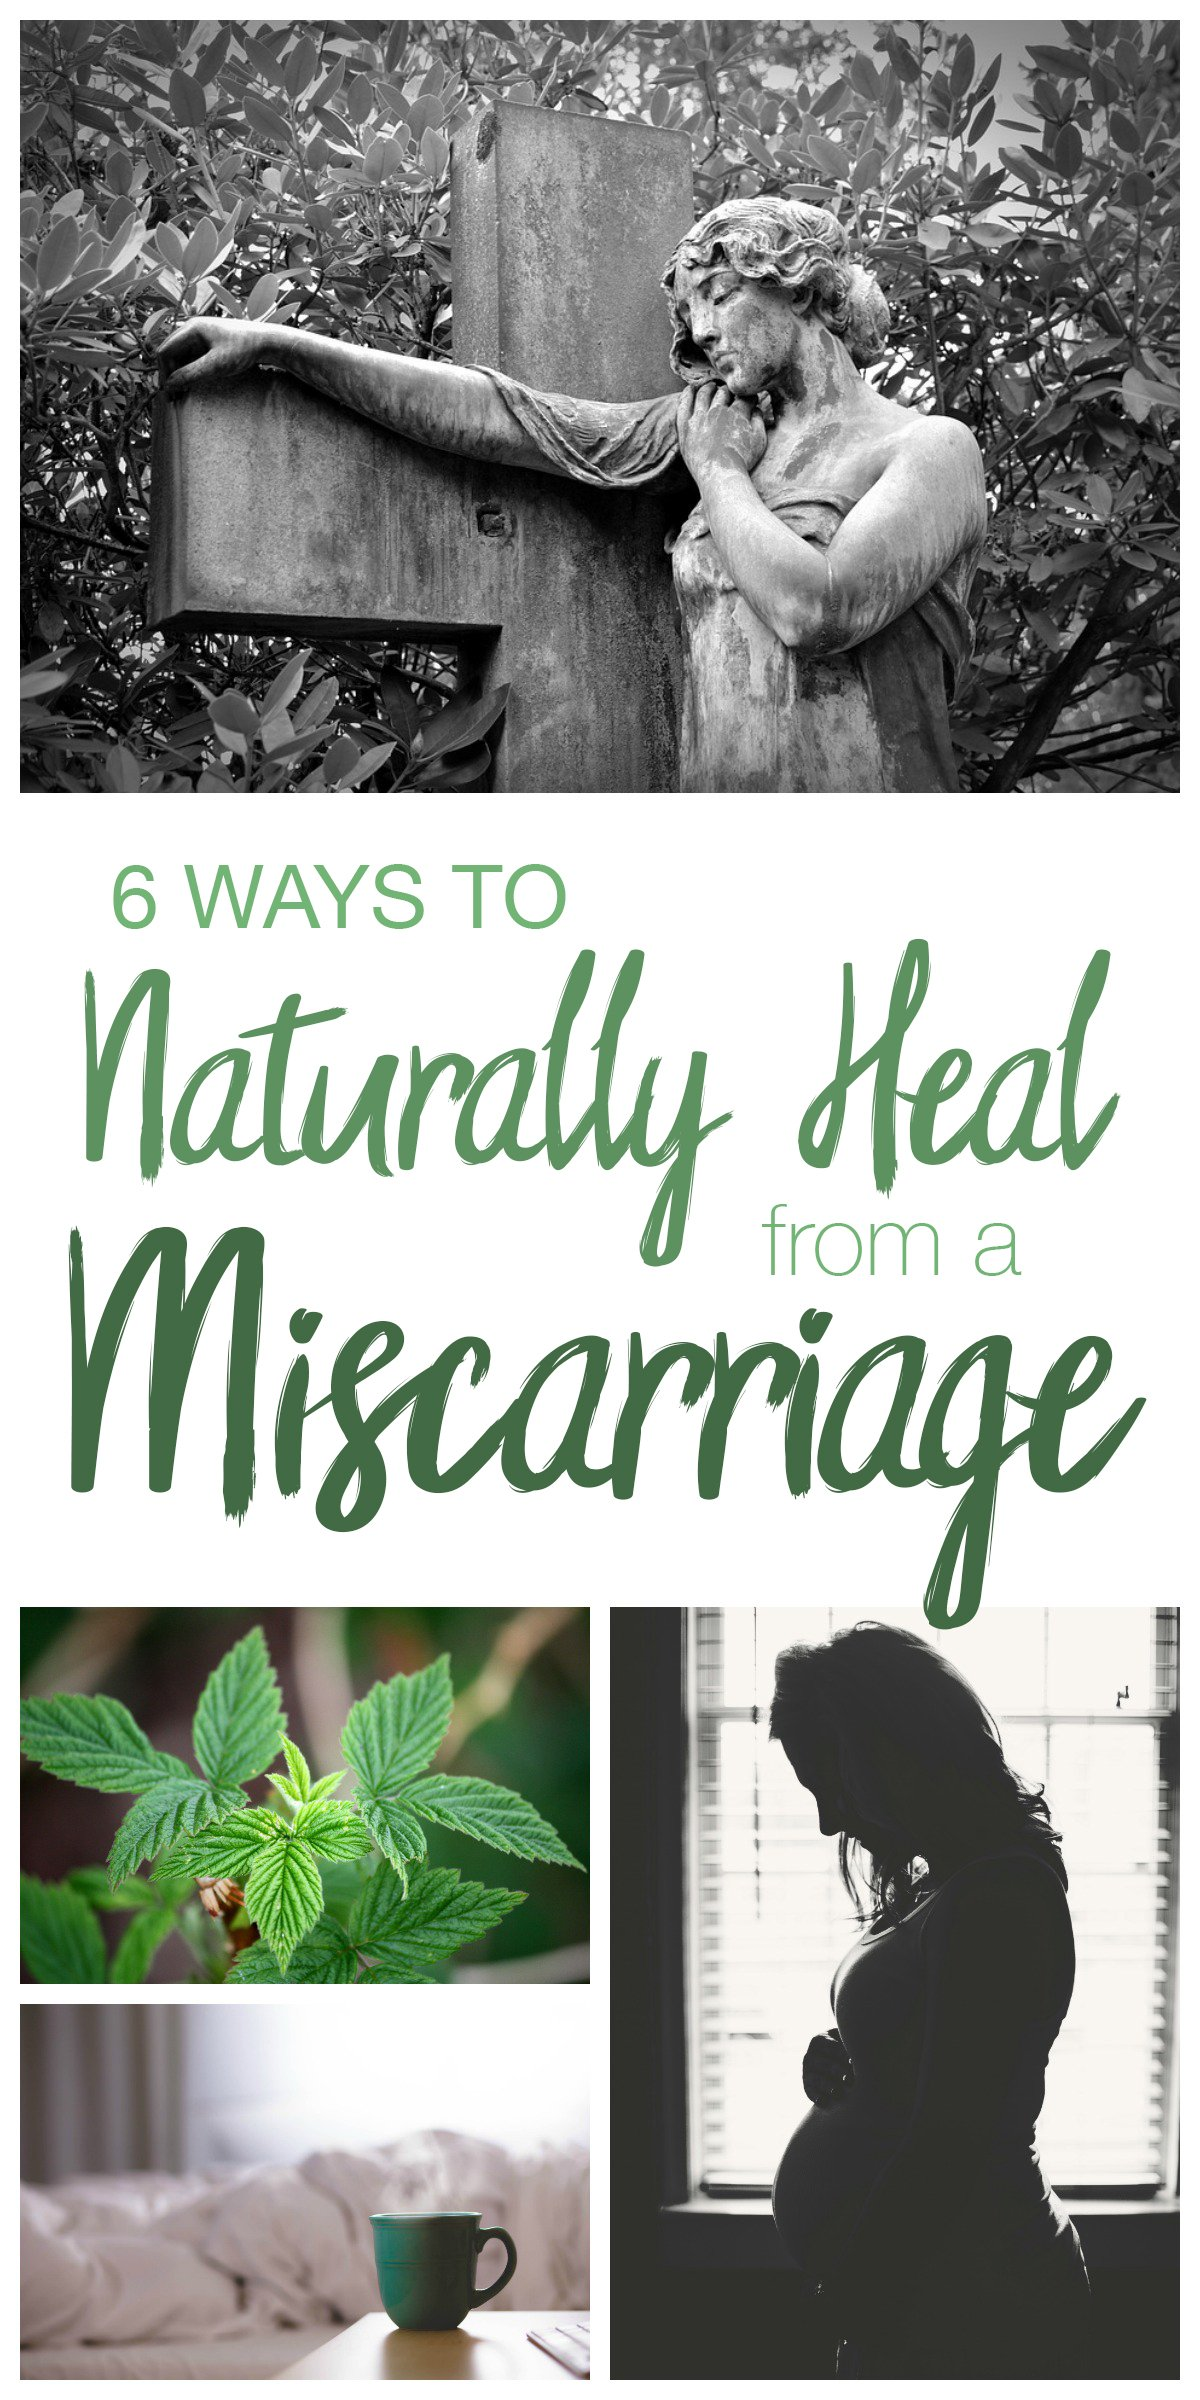 6 Ways to Naturally Heal from a Miscarriage